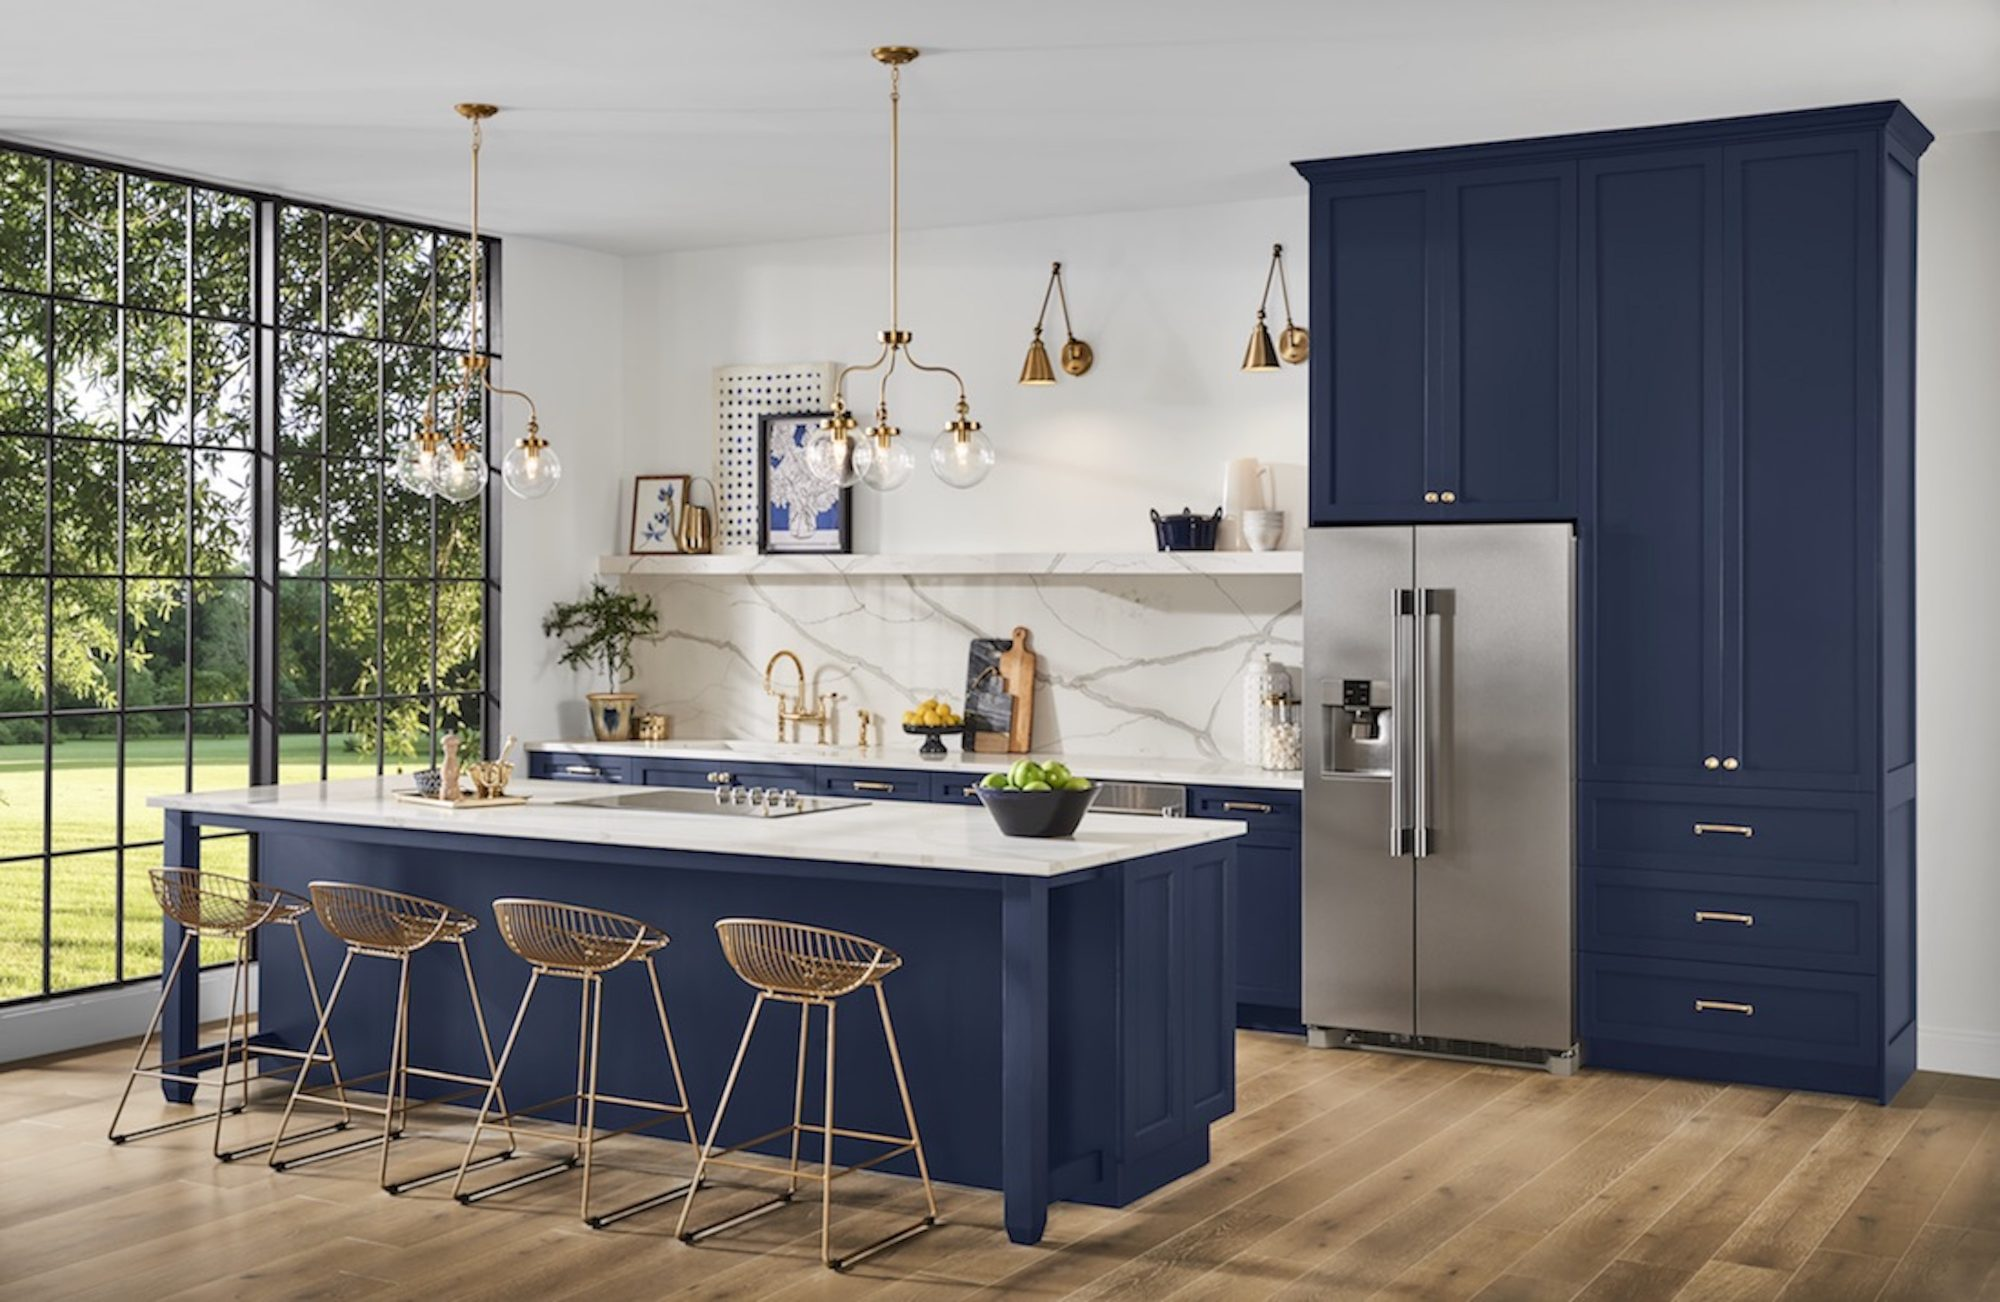 Sherwin Williams Color of the Year 2020 Kitchen